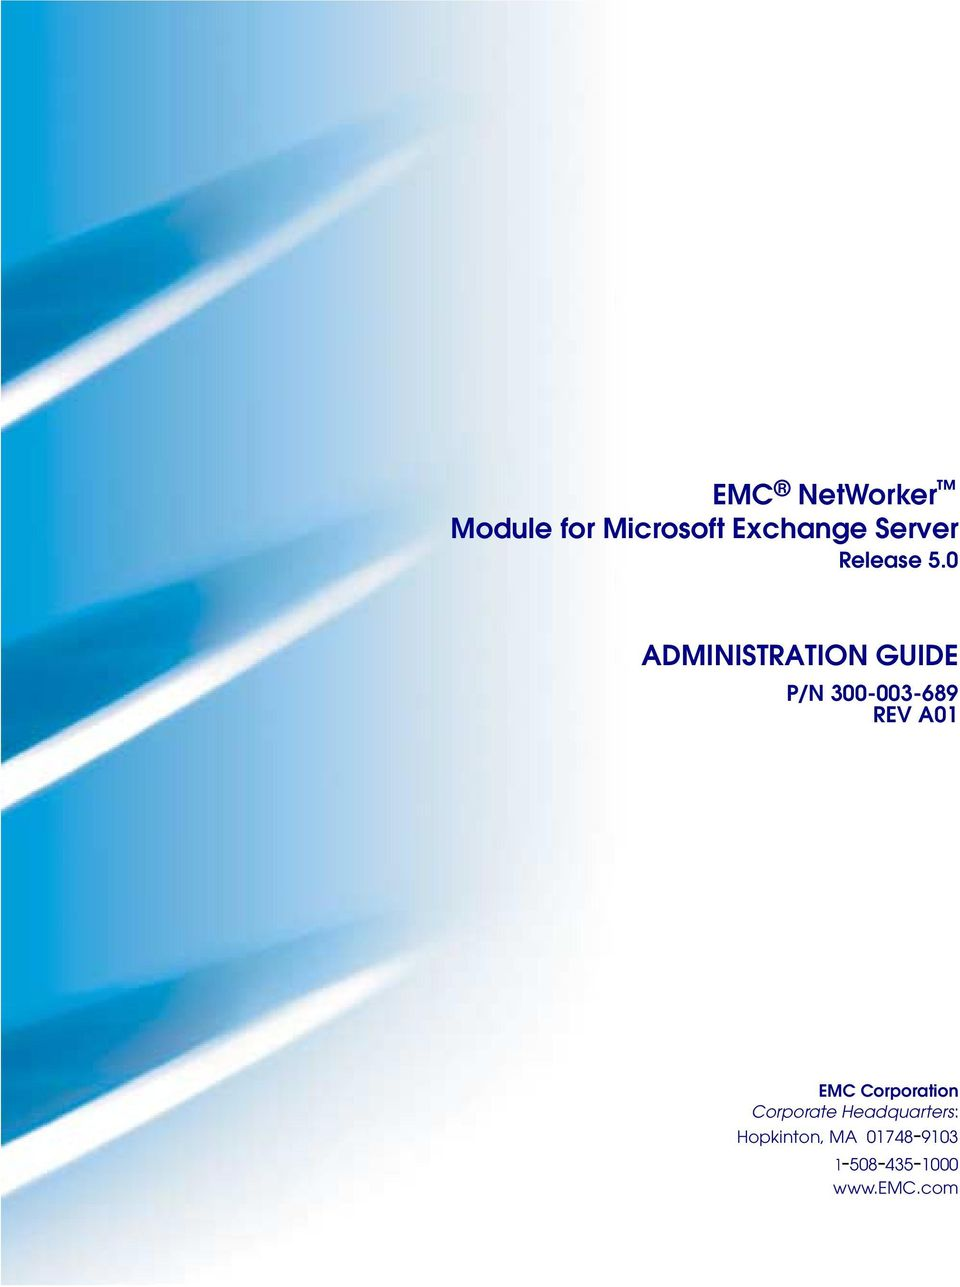 0 ADMINISTRATION GUIDE P/N 300-003-689 REV A01